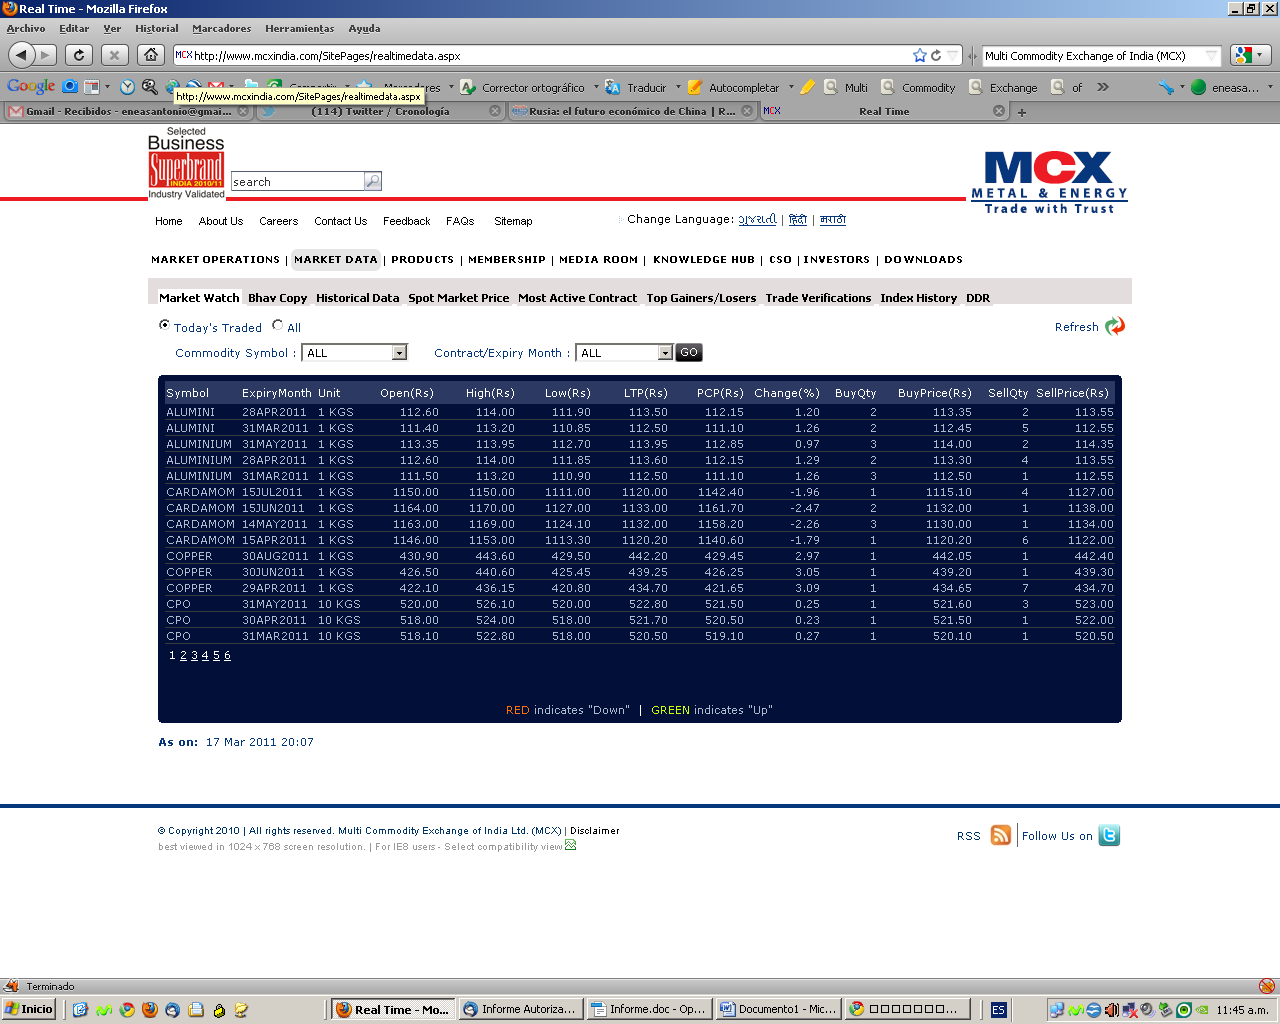 Multi Commodity Exchange of India Desde su creación en 2003 a esta parte, el Multi Commodity Exchange of India (MCX) acaparó el 80% del market